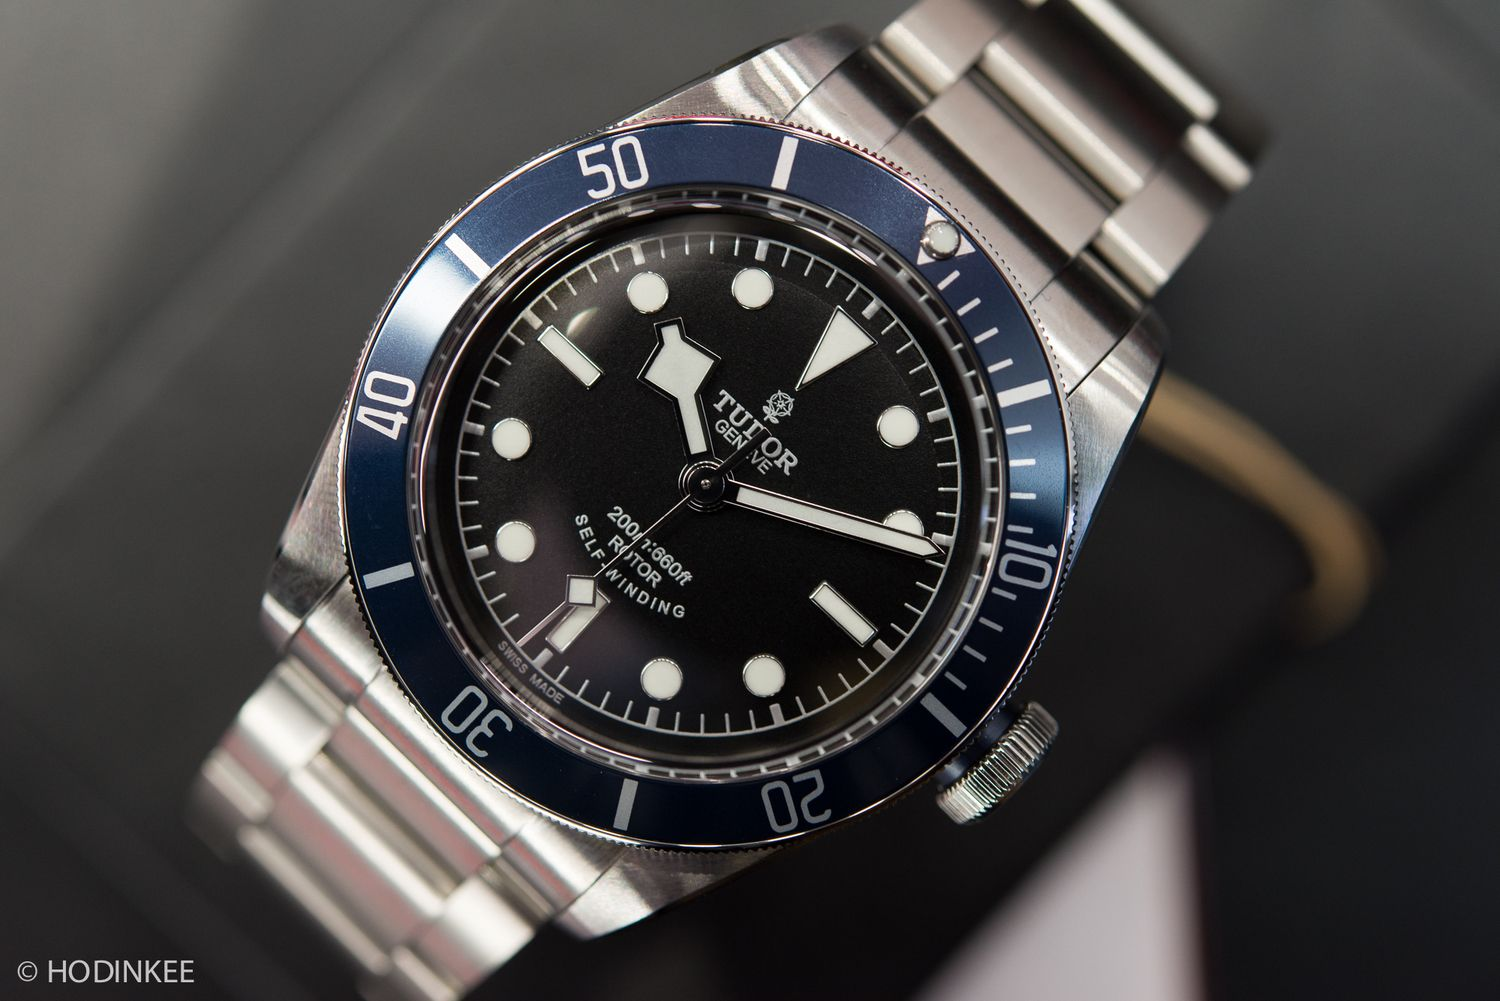 Hands-On With The Tudor Heritage Black Bay With Blue Bezel (And Your First Chance To Buy One In The USA) — HODINKEE - Wristwatch News, Revie...